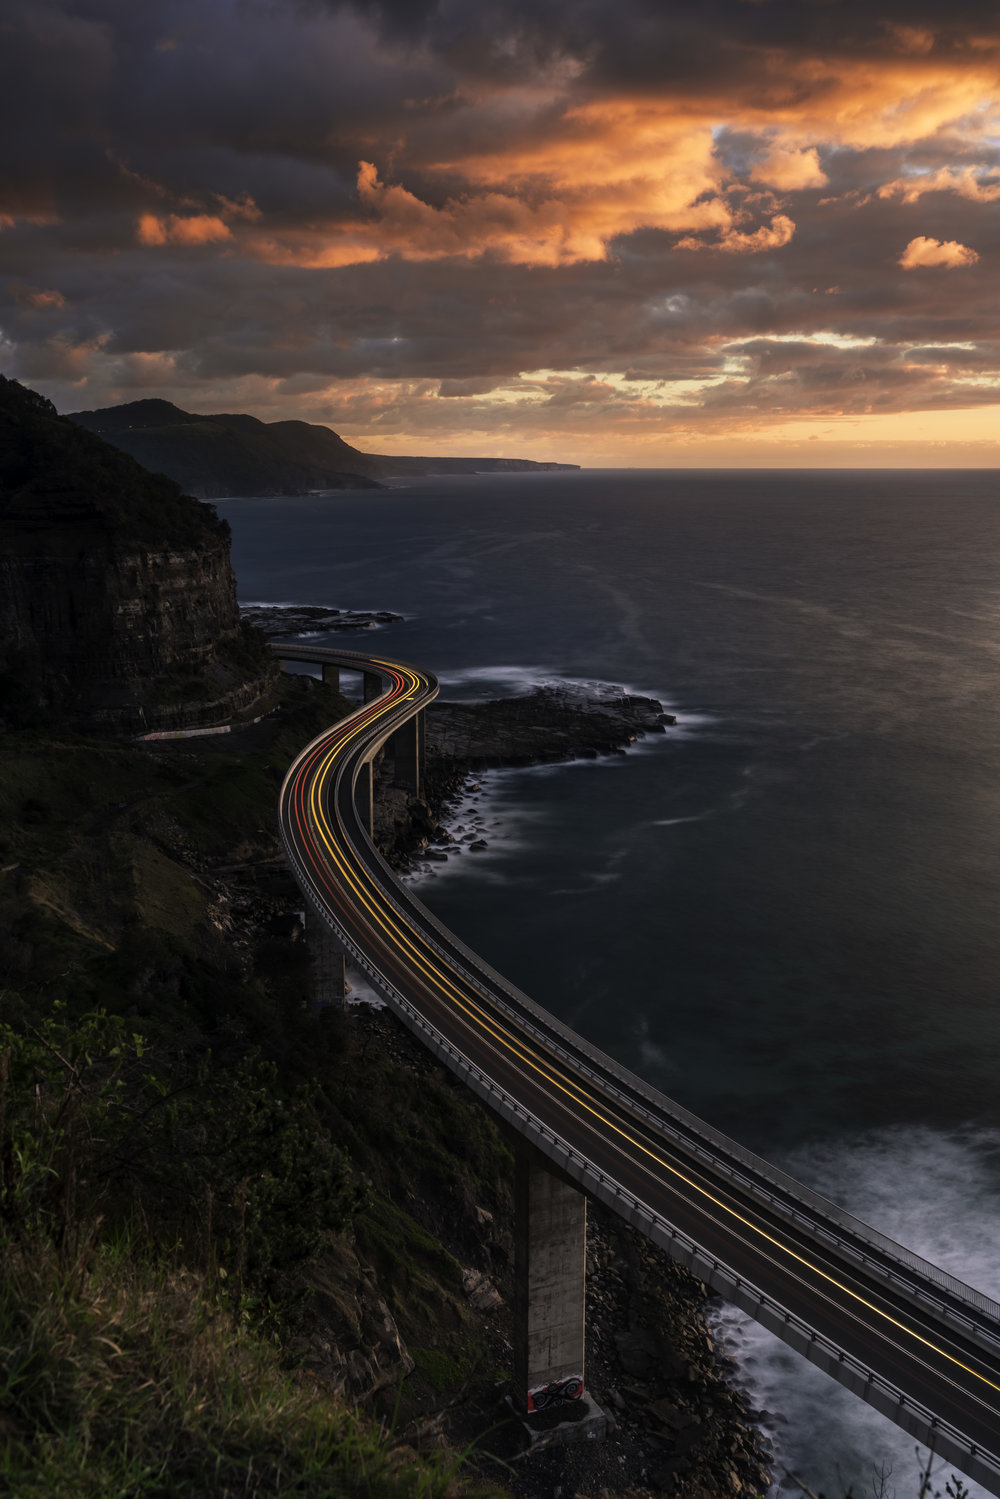 Sunrise over Sea Cliff Bridge